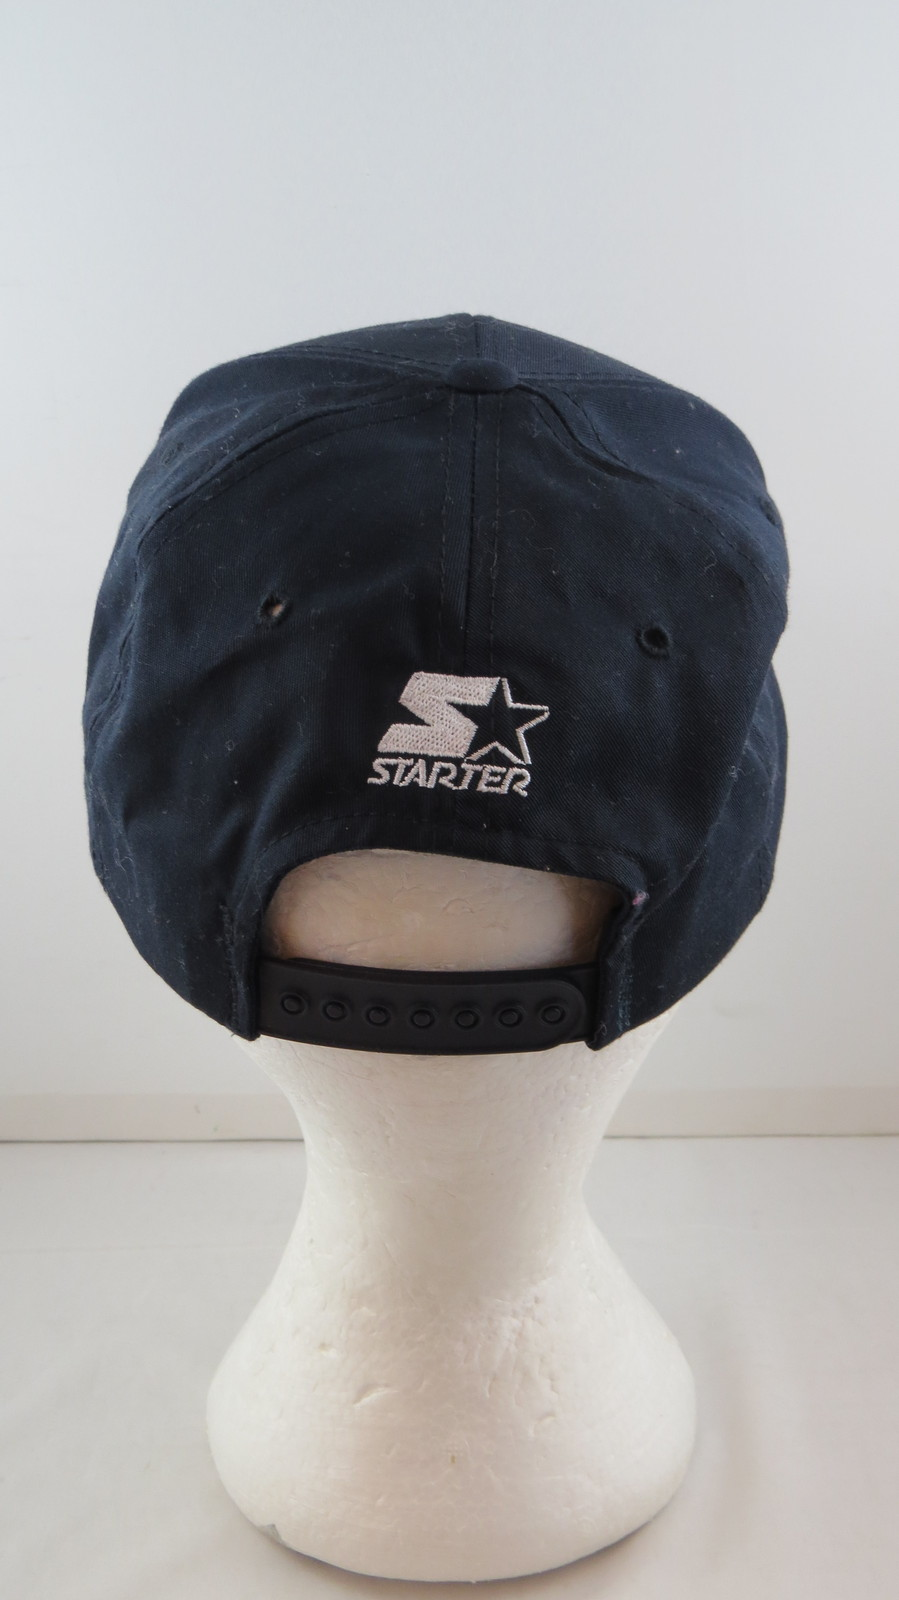 13074b03e195aa Vancouver Canucks Hat (VTG) - All Black with Orca Logo - By Starter -